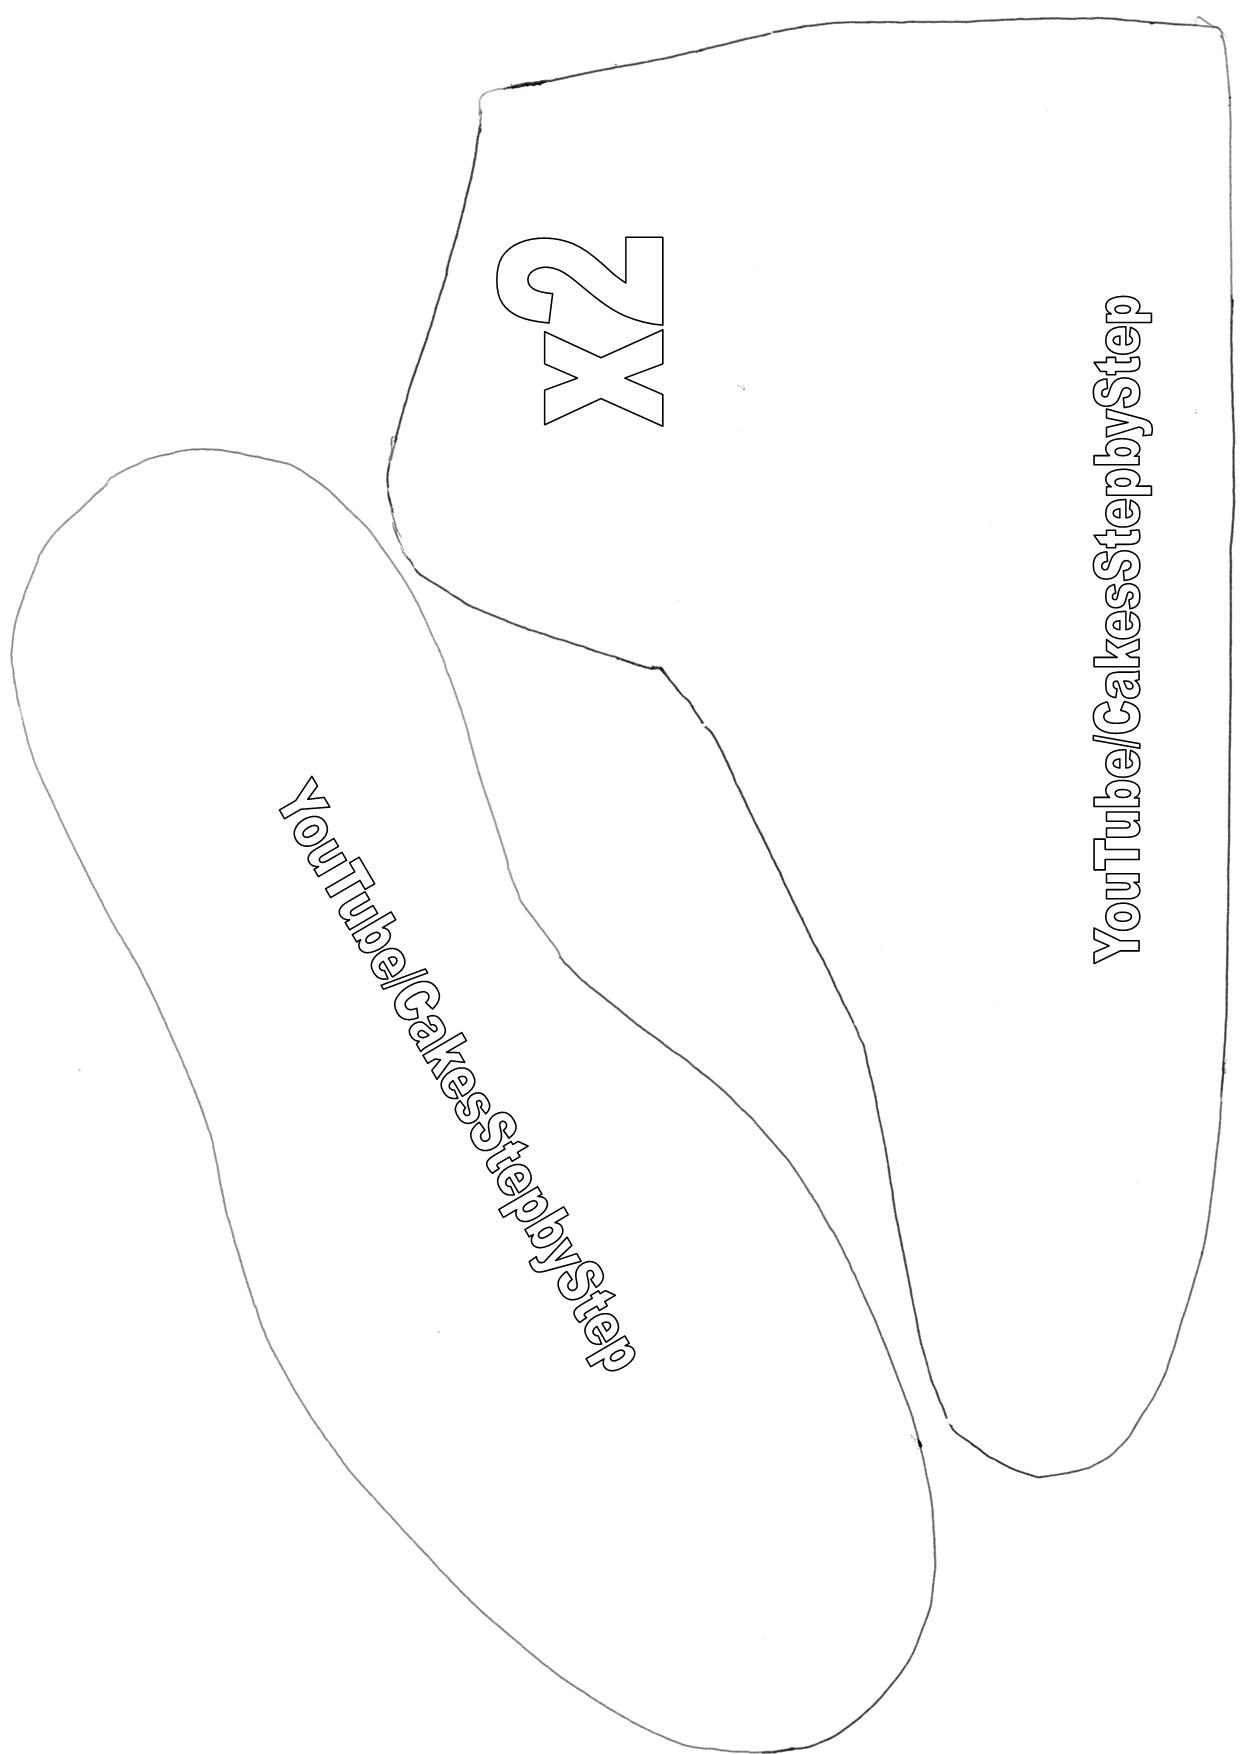 image about Sneaker Template Printable referred to as Free of charge Cake Templates - Welcome in the direction of CakesStepbyStep.